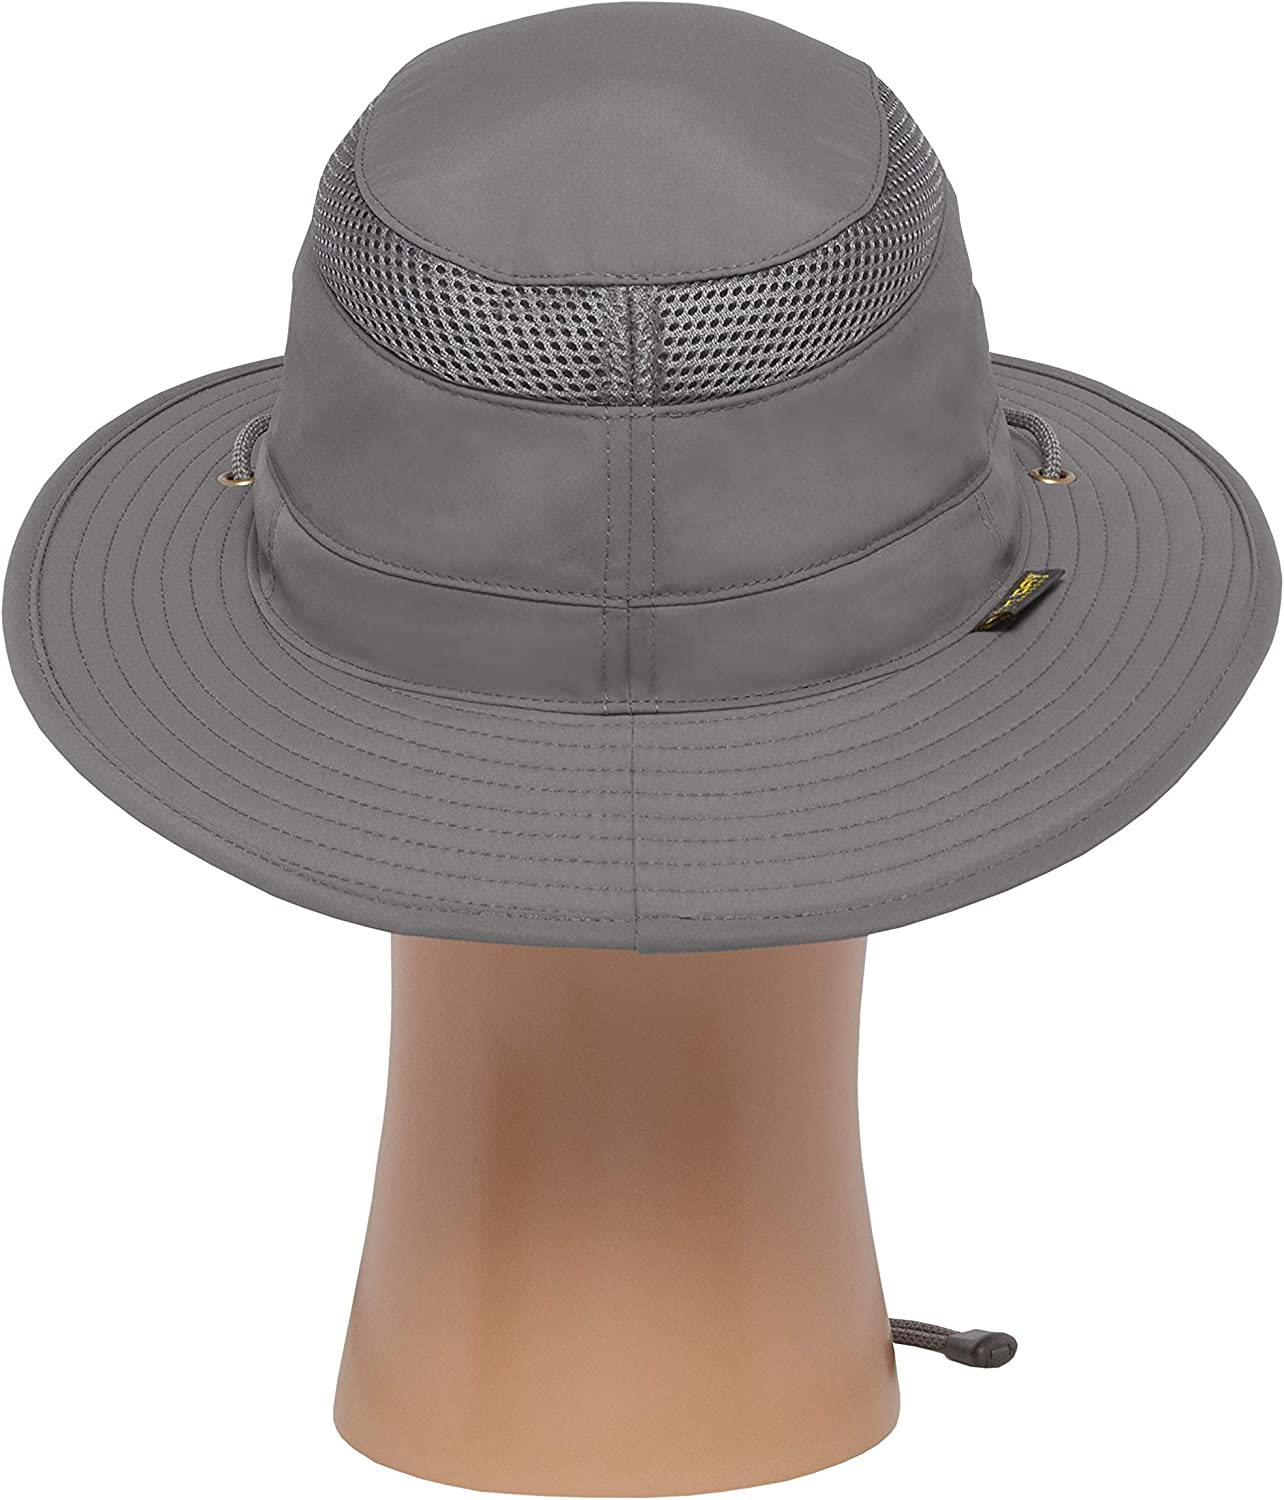 Sunday Afternoons Charter Escape Hat 3120